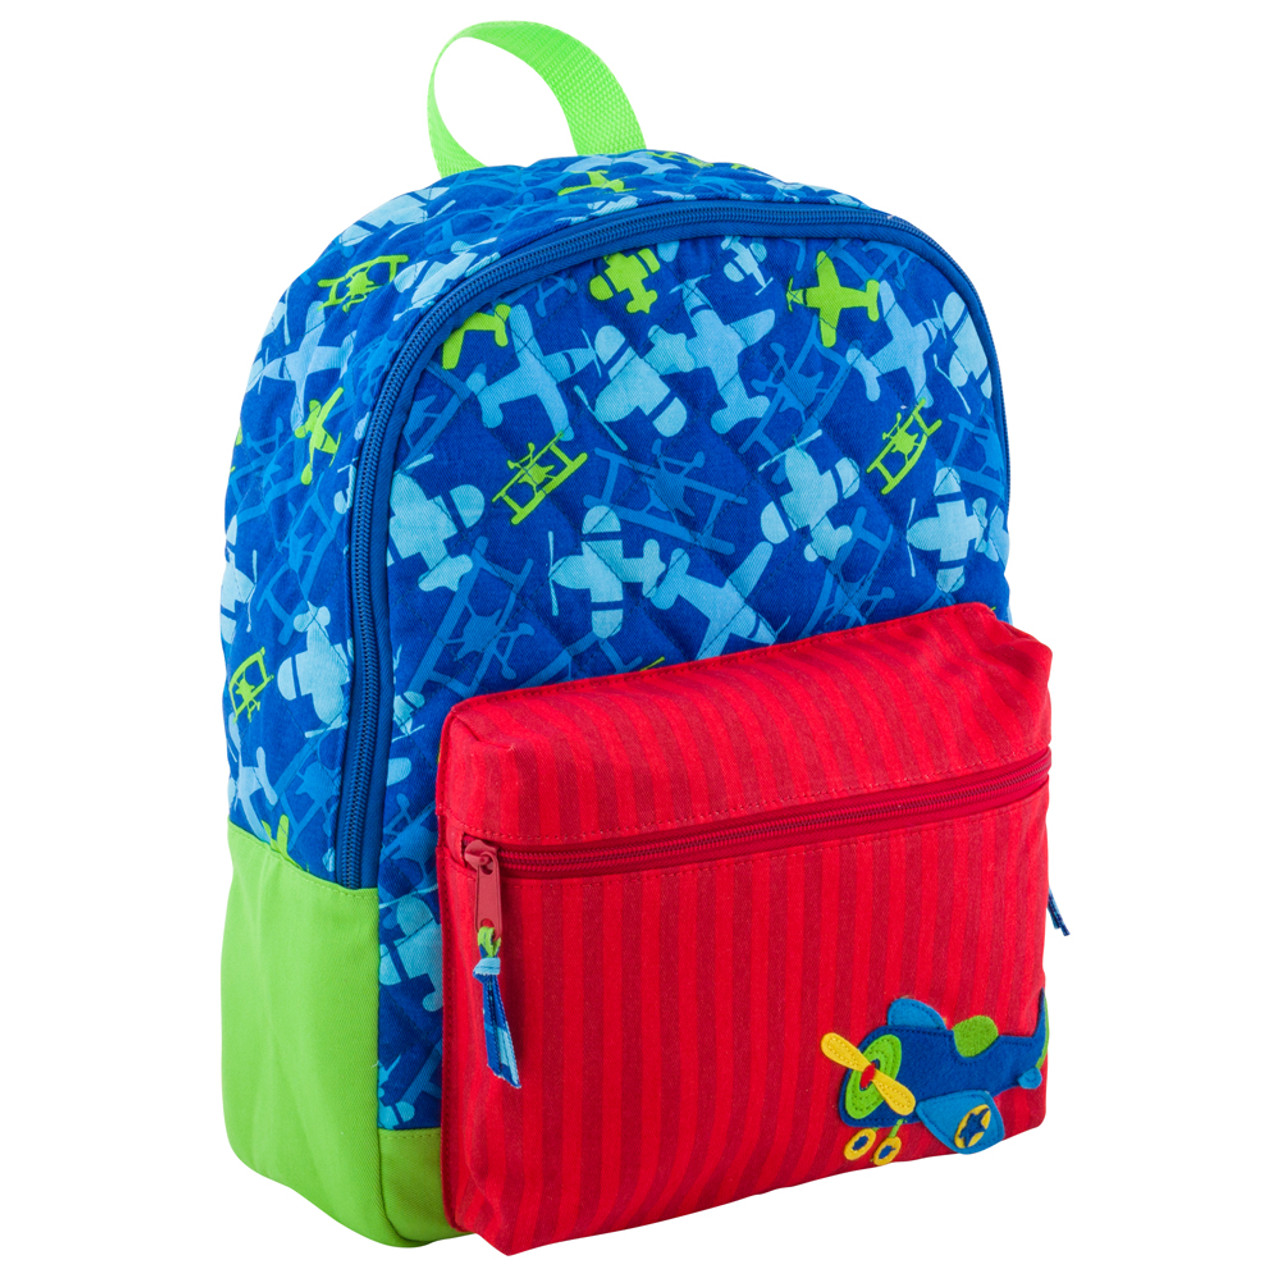 Stephen Joseph Quilted Aeroplane Backpack